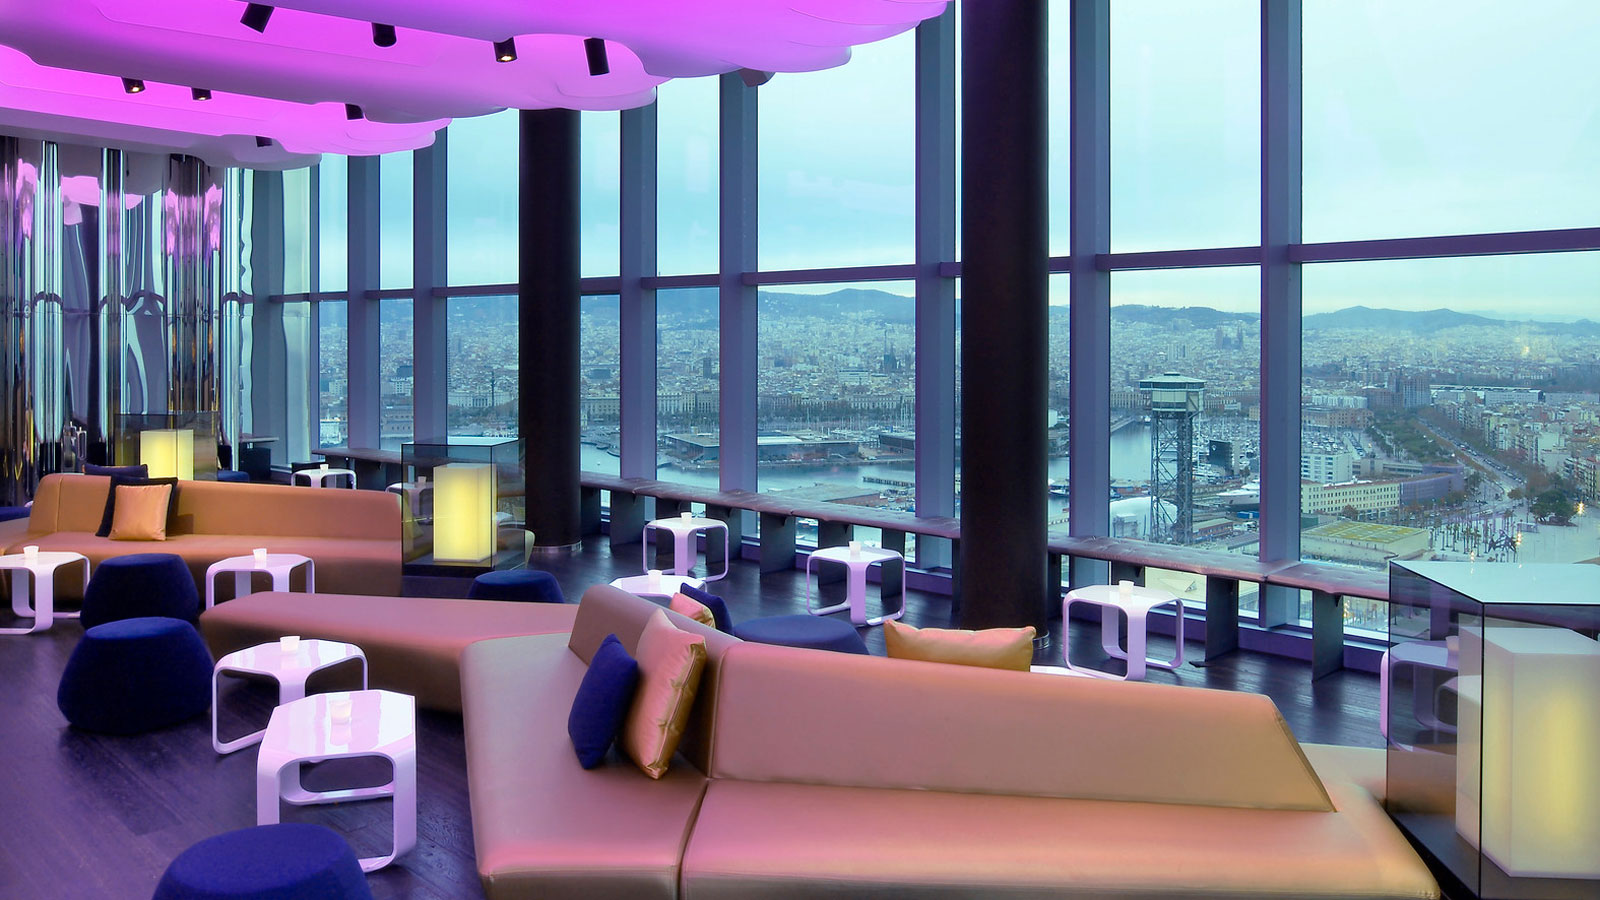 The w hotel in barcelona by ricardo bofill for Design hotel w barcelona